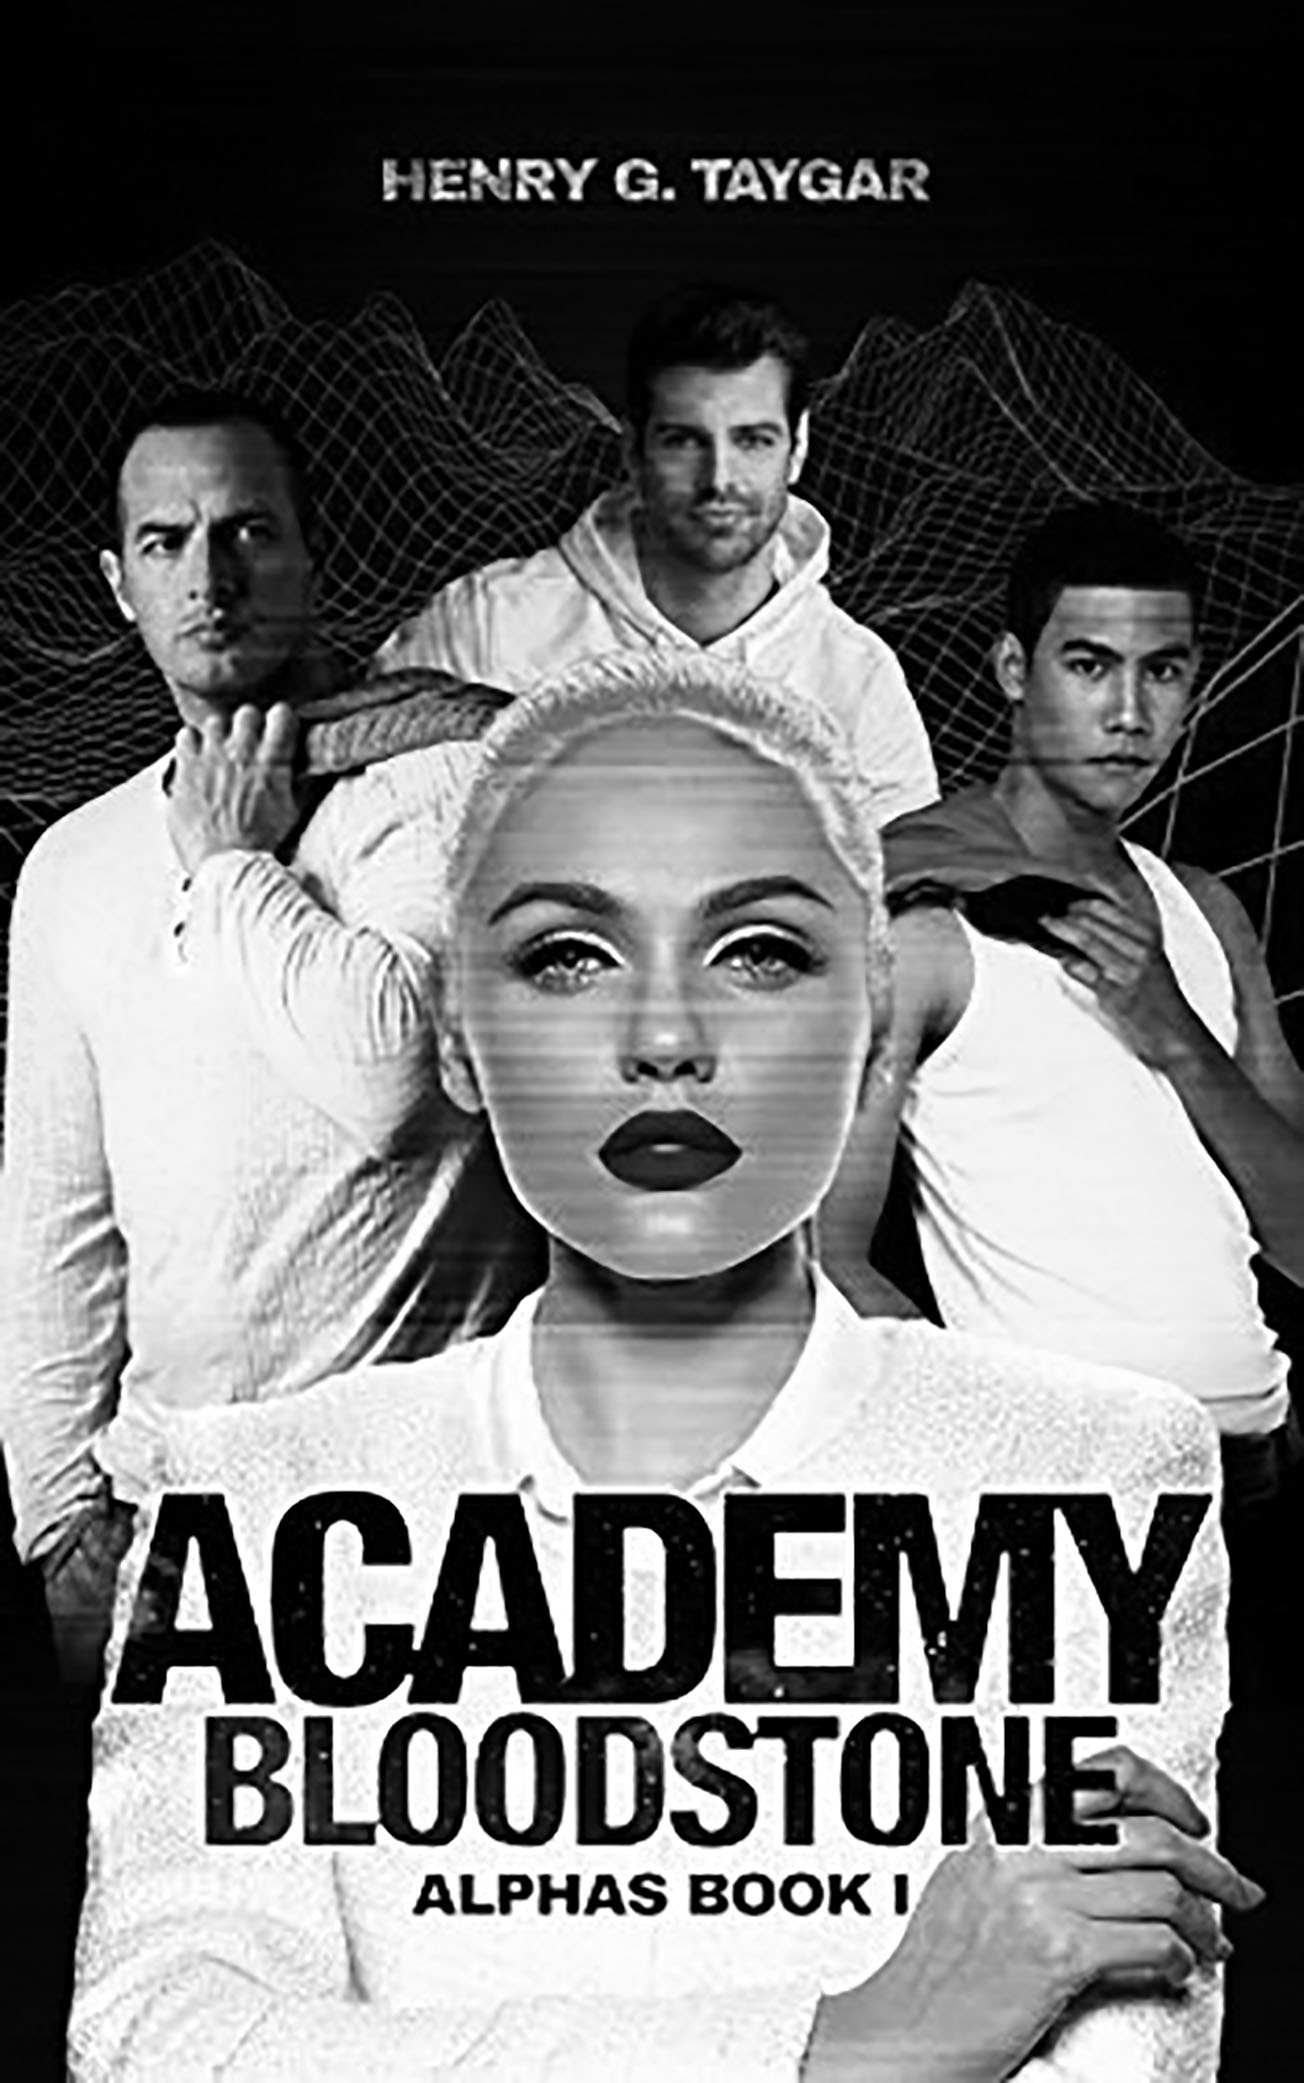 """The black and white cover of Ryan Haggerty's first book, """"Academy Bloodstone: Alphas Book 1."""" The cover features a woman in front of three men, and Ryan's pseudonym, """"Henry G. Taygar,"""" is at the top of the cover."""